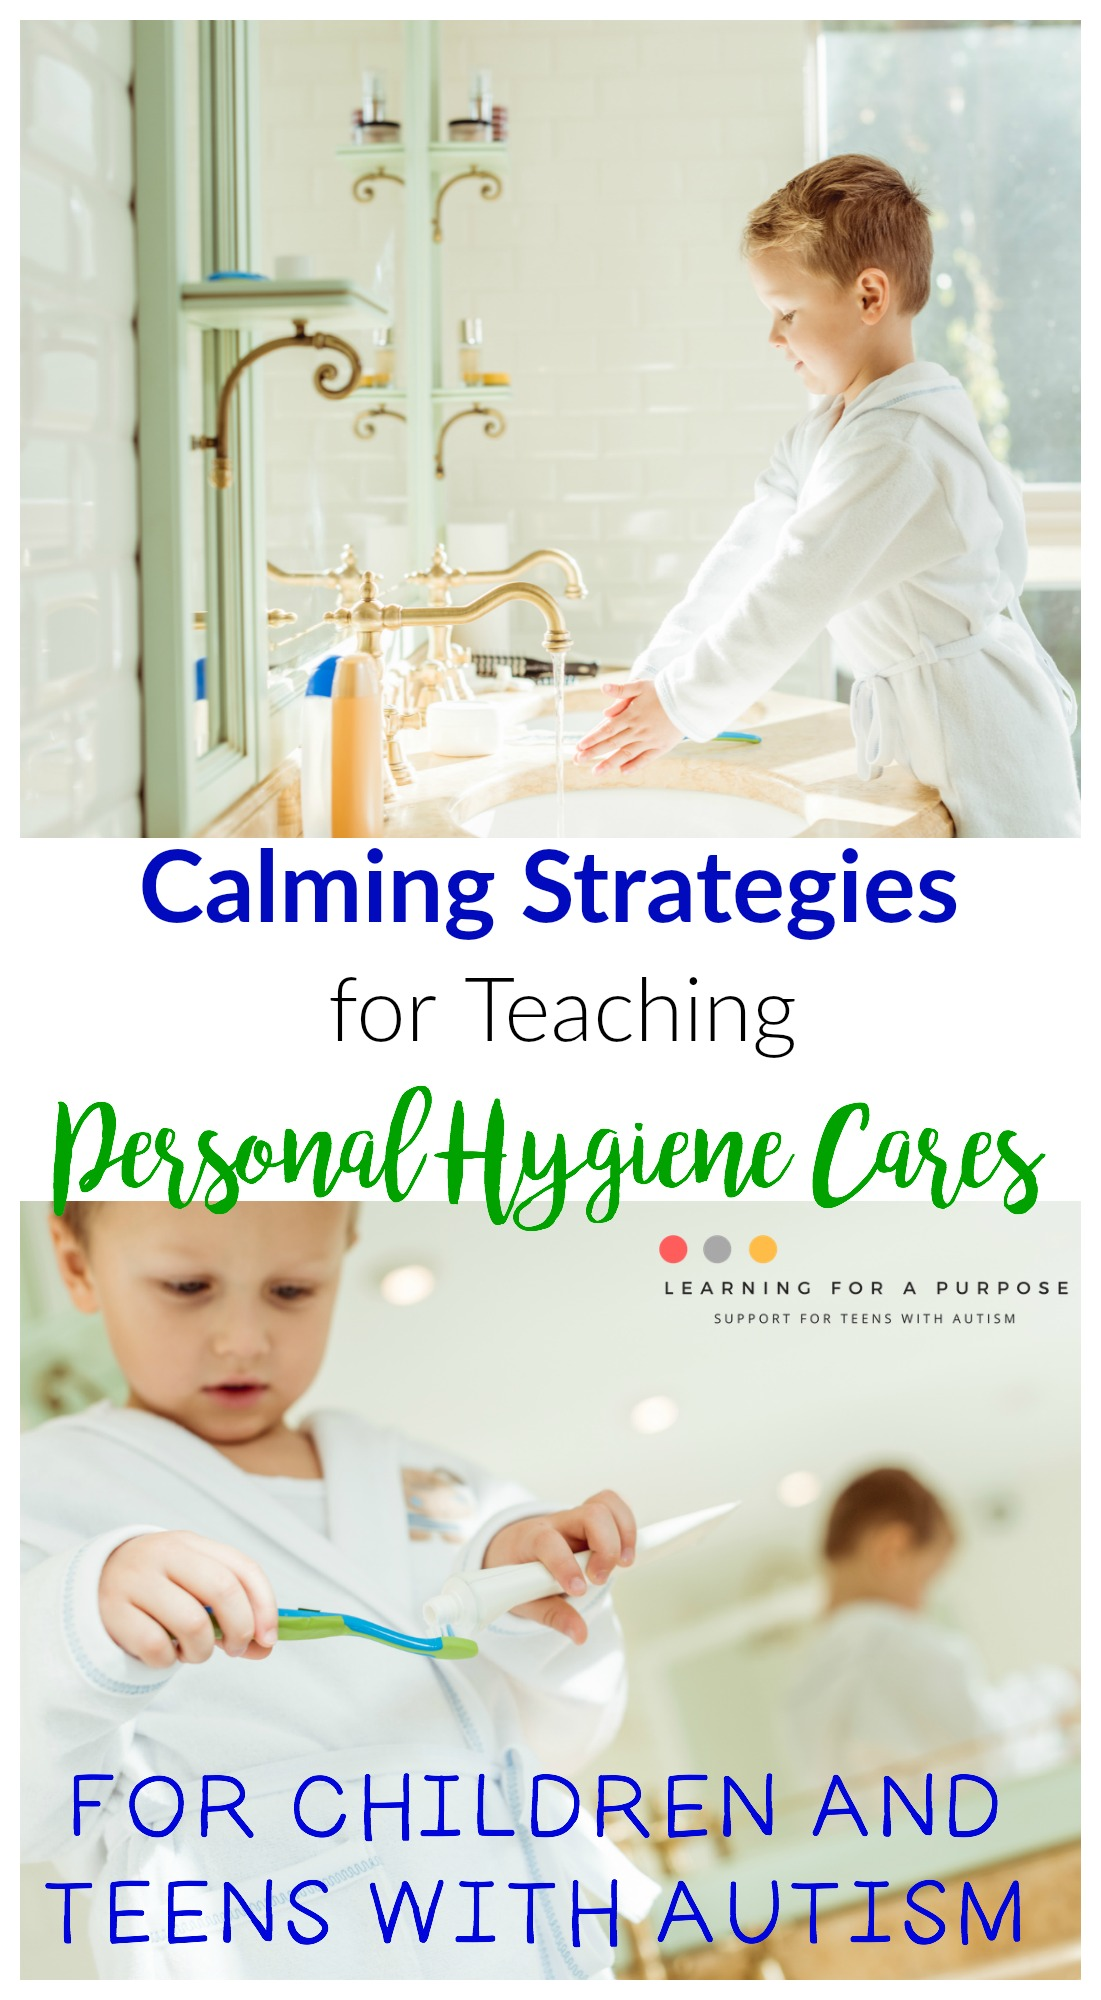 Calming Strategies for Teaching Personal Hygiene Cares #autism #personalhygiene #selfcare #learningforapurpose